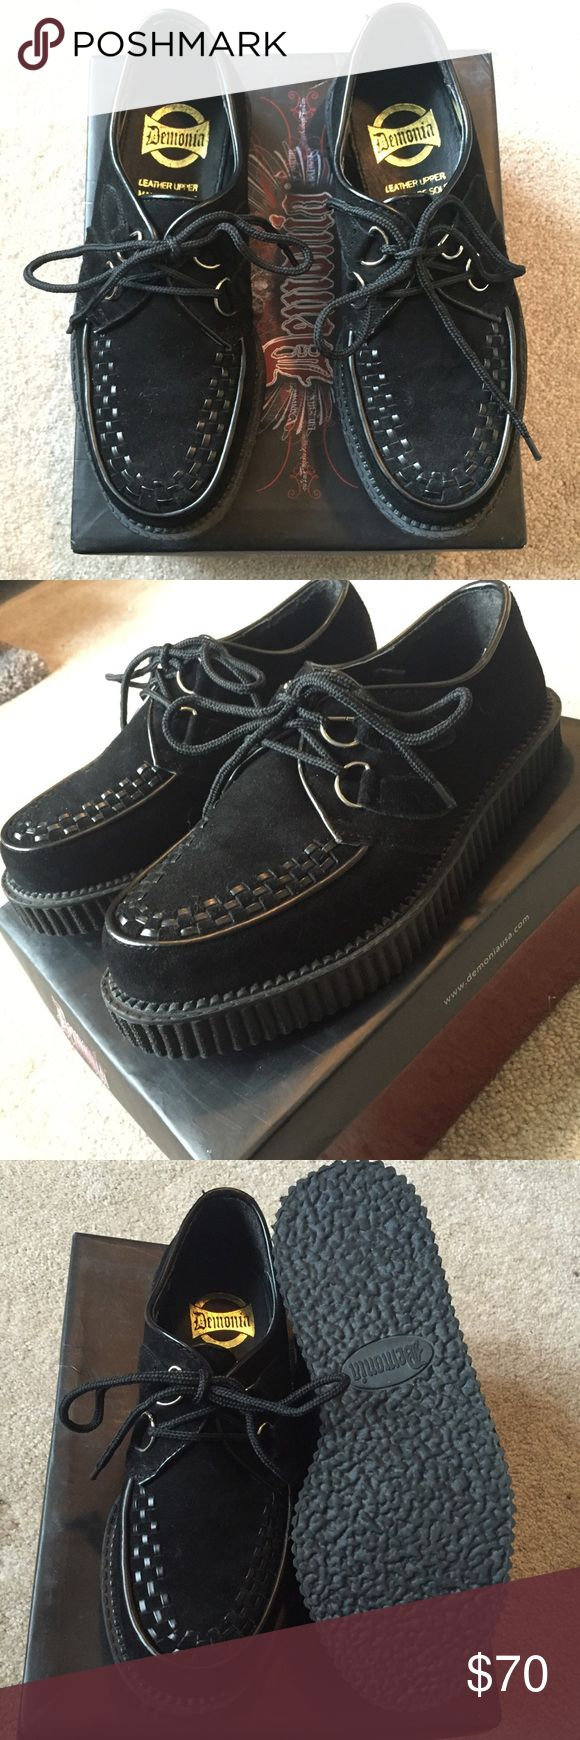 Demonia genuine suede creepers These creepers are in perfect condition, and have only been worn once. Will be shipped in original packaging. demonia Shoes Platforms